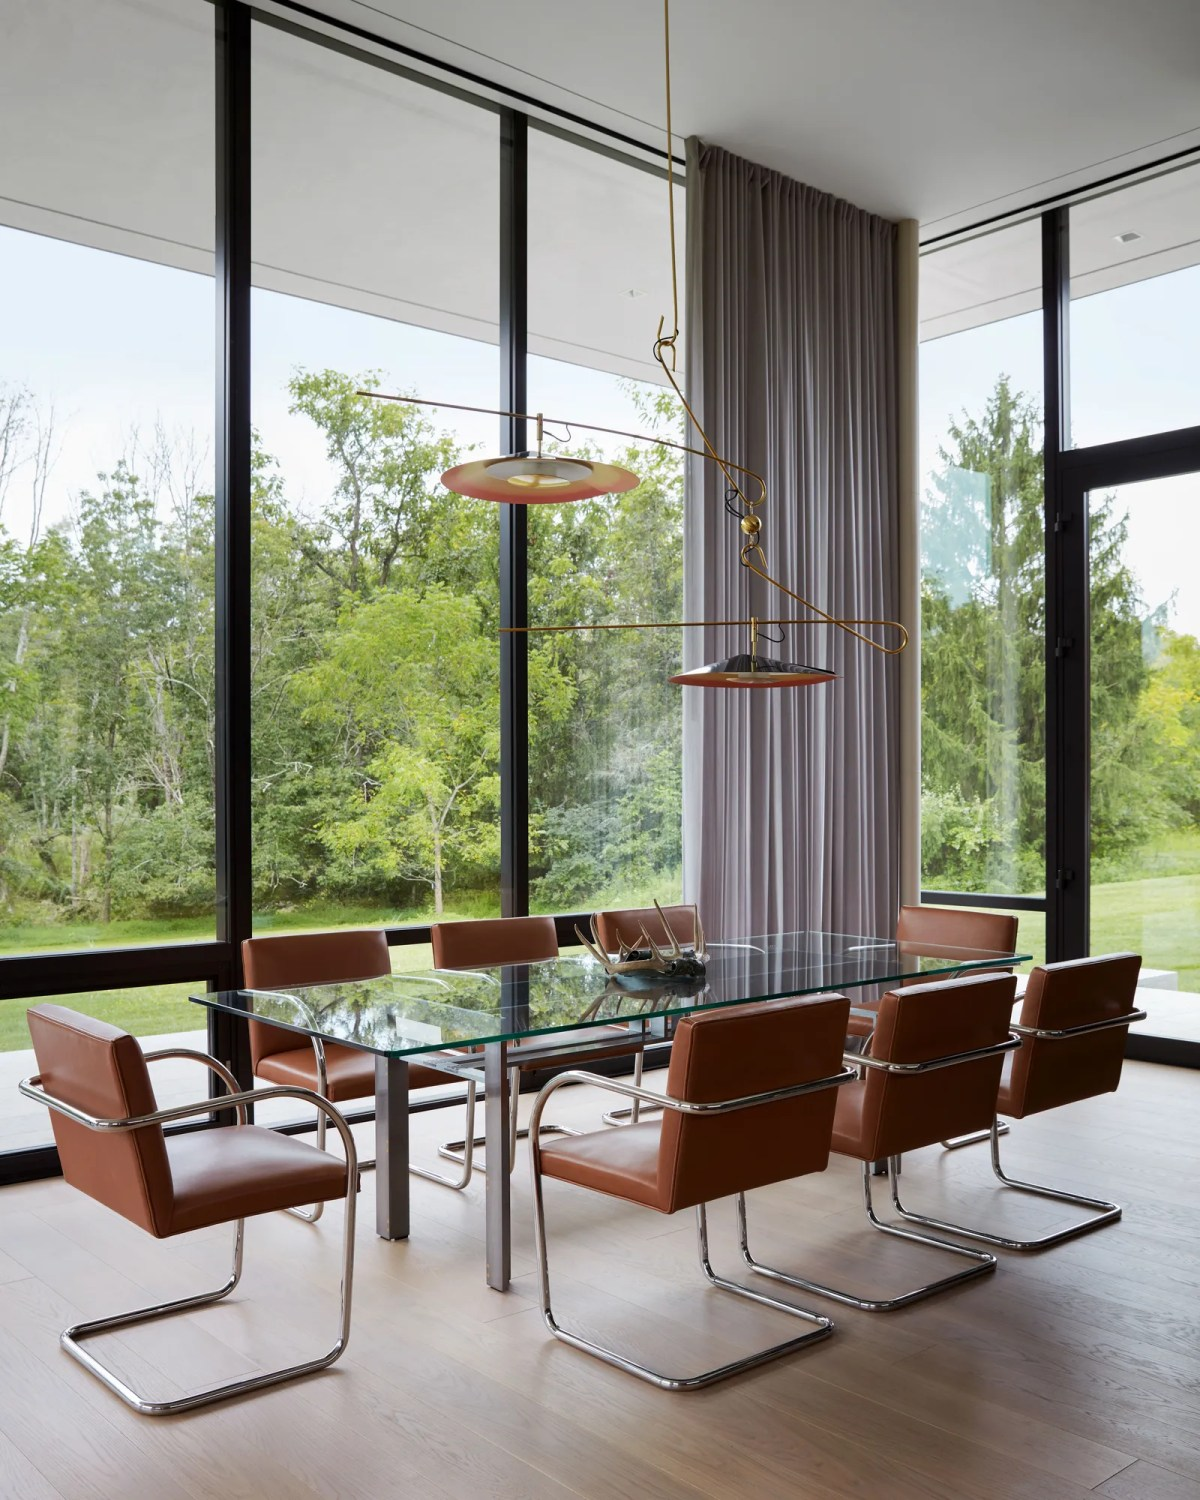 pKnoll leather Brno chairs surround a Carlo Scarpa table. A David Weeks enameled metal lighting fixture seems suspended...